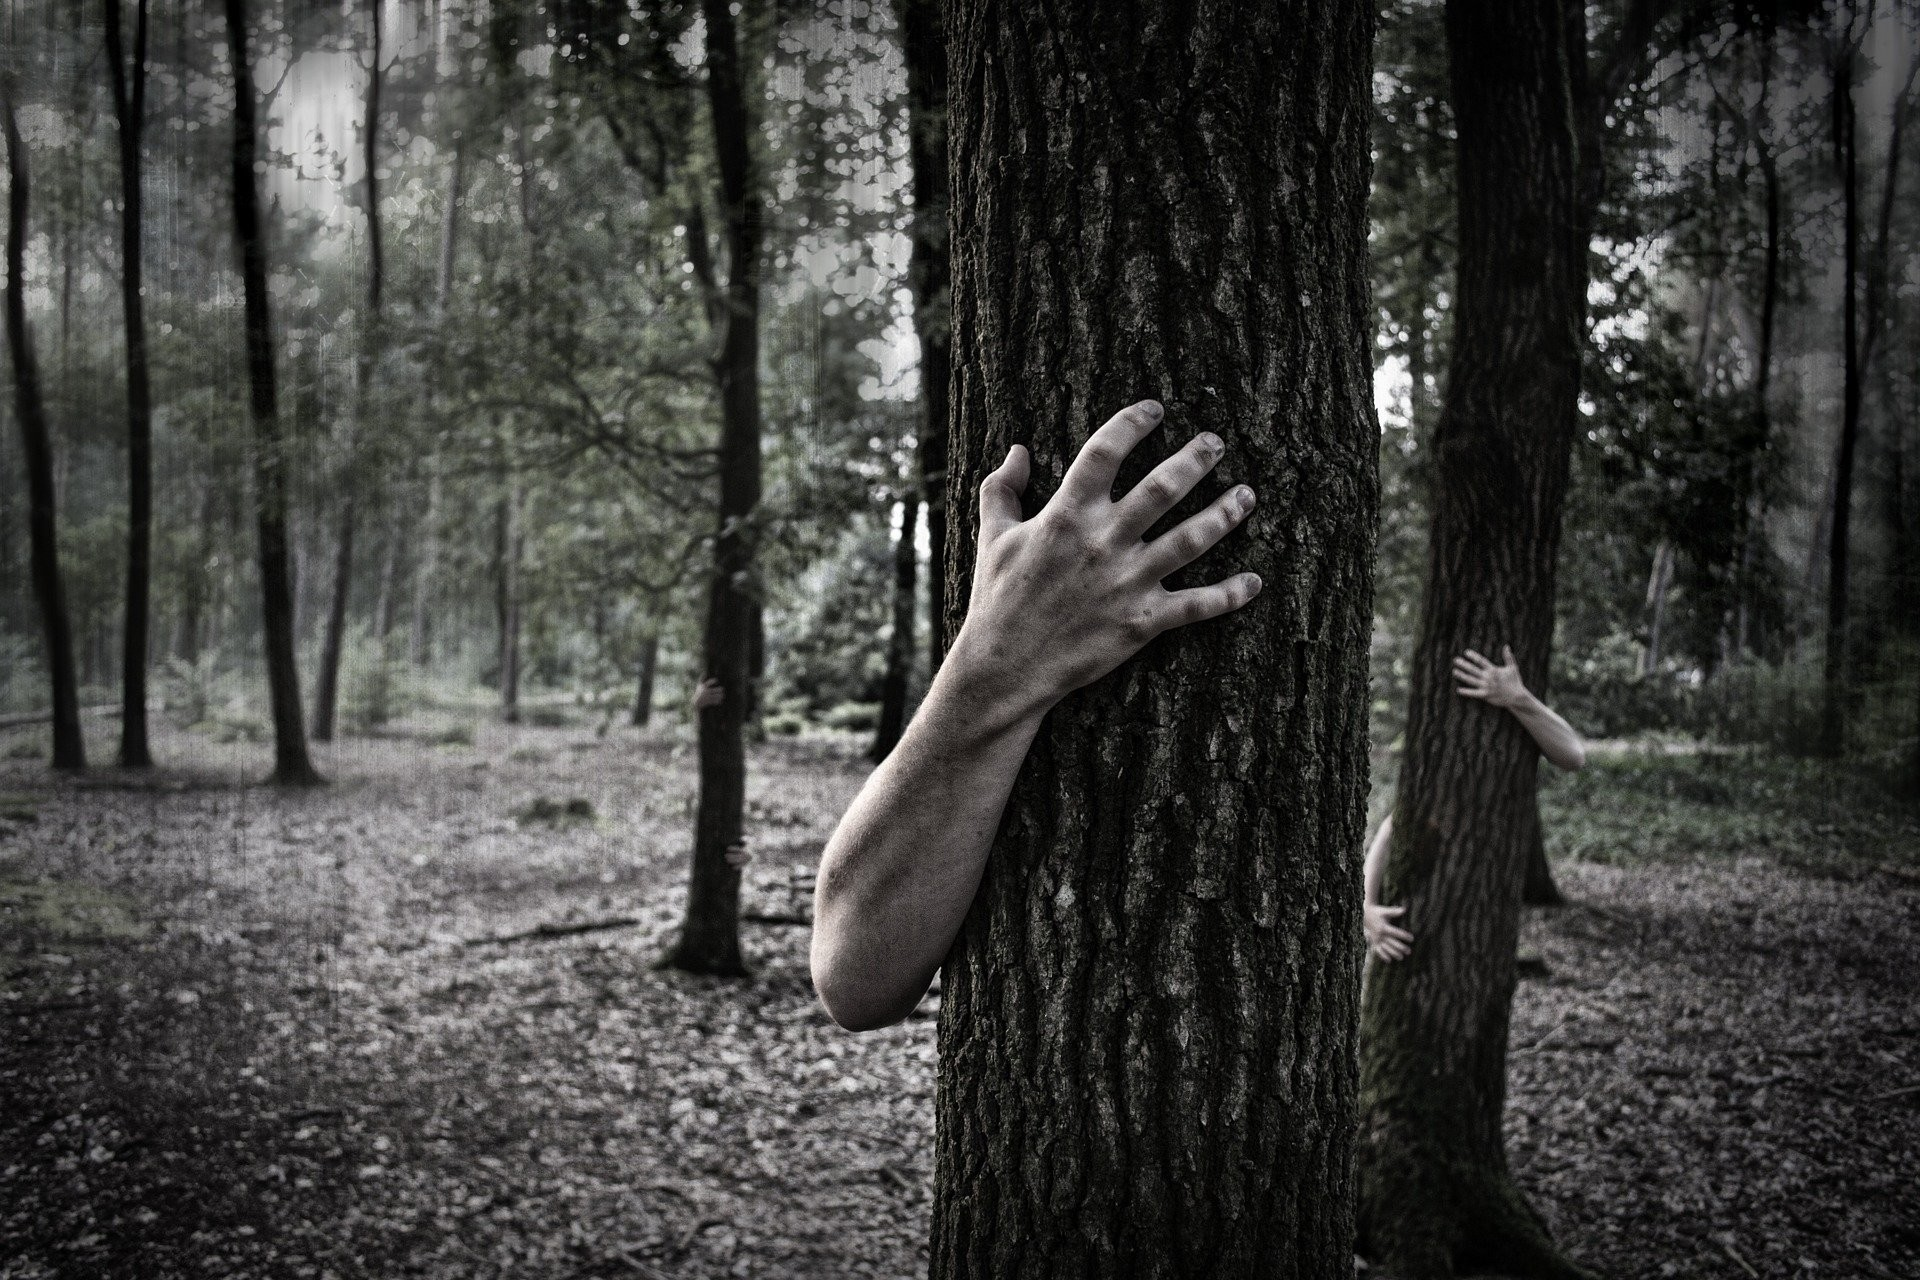 Hands Trunk Creepy Zombie Forest Horror Scary Forest Wallpaper At Dark  Wallpapers